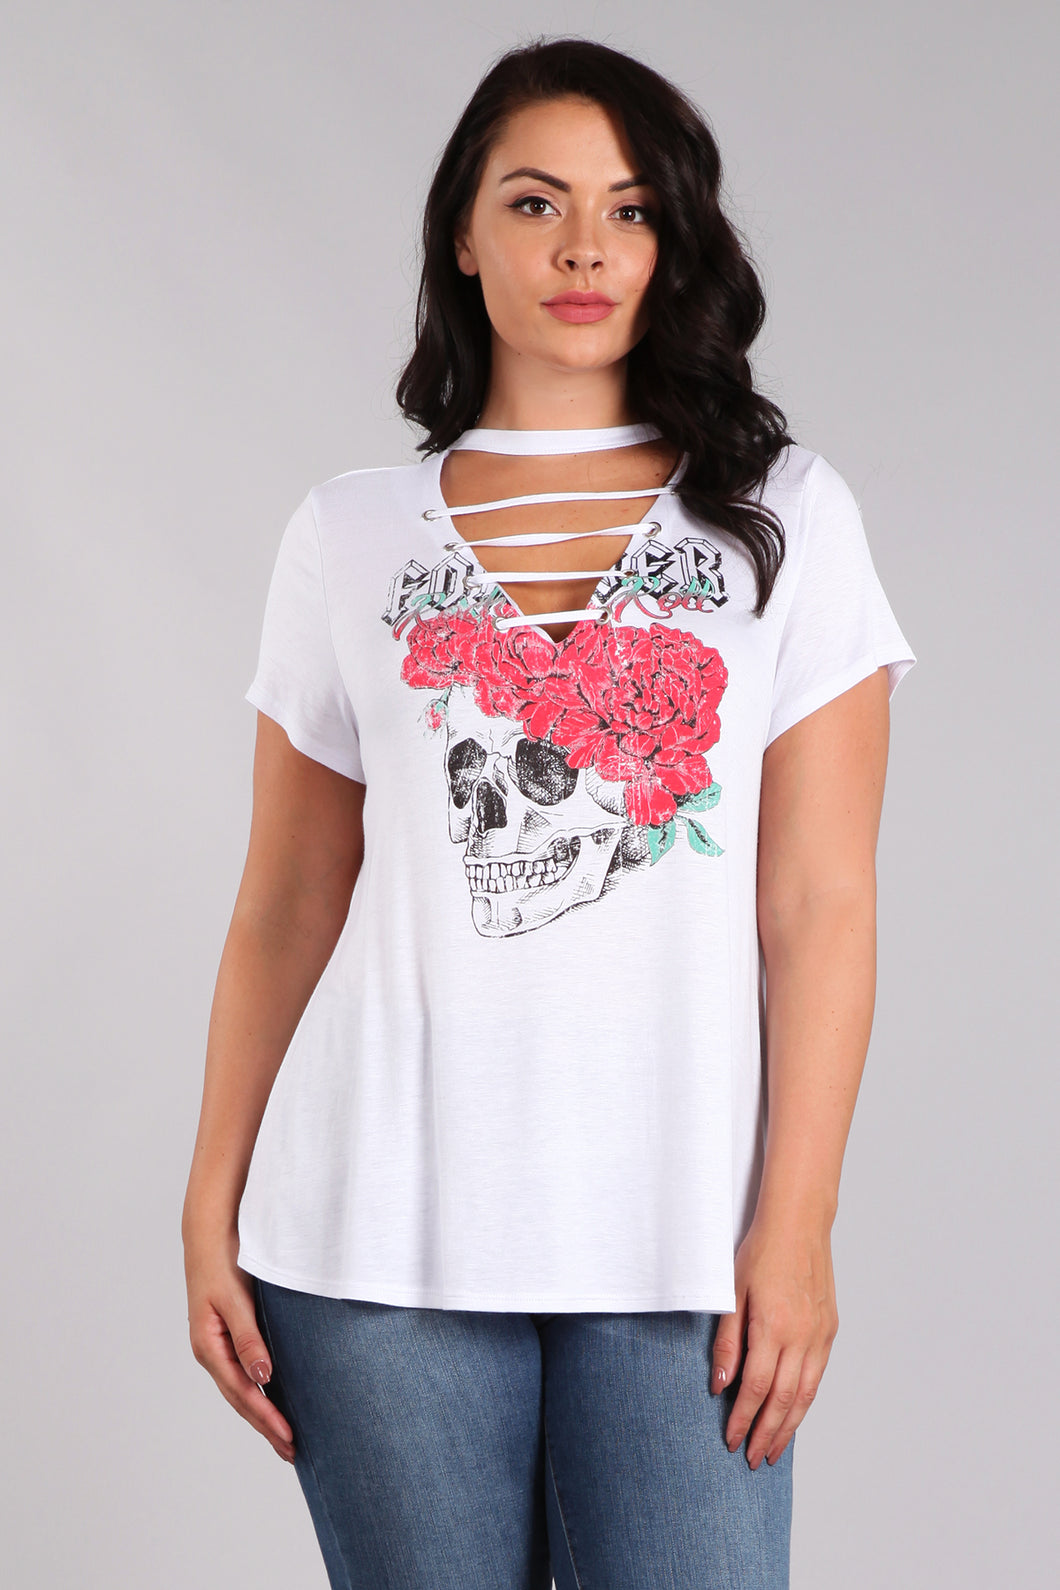 I Love Rock n Roll - Distressed Tee - Curvy